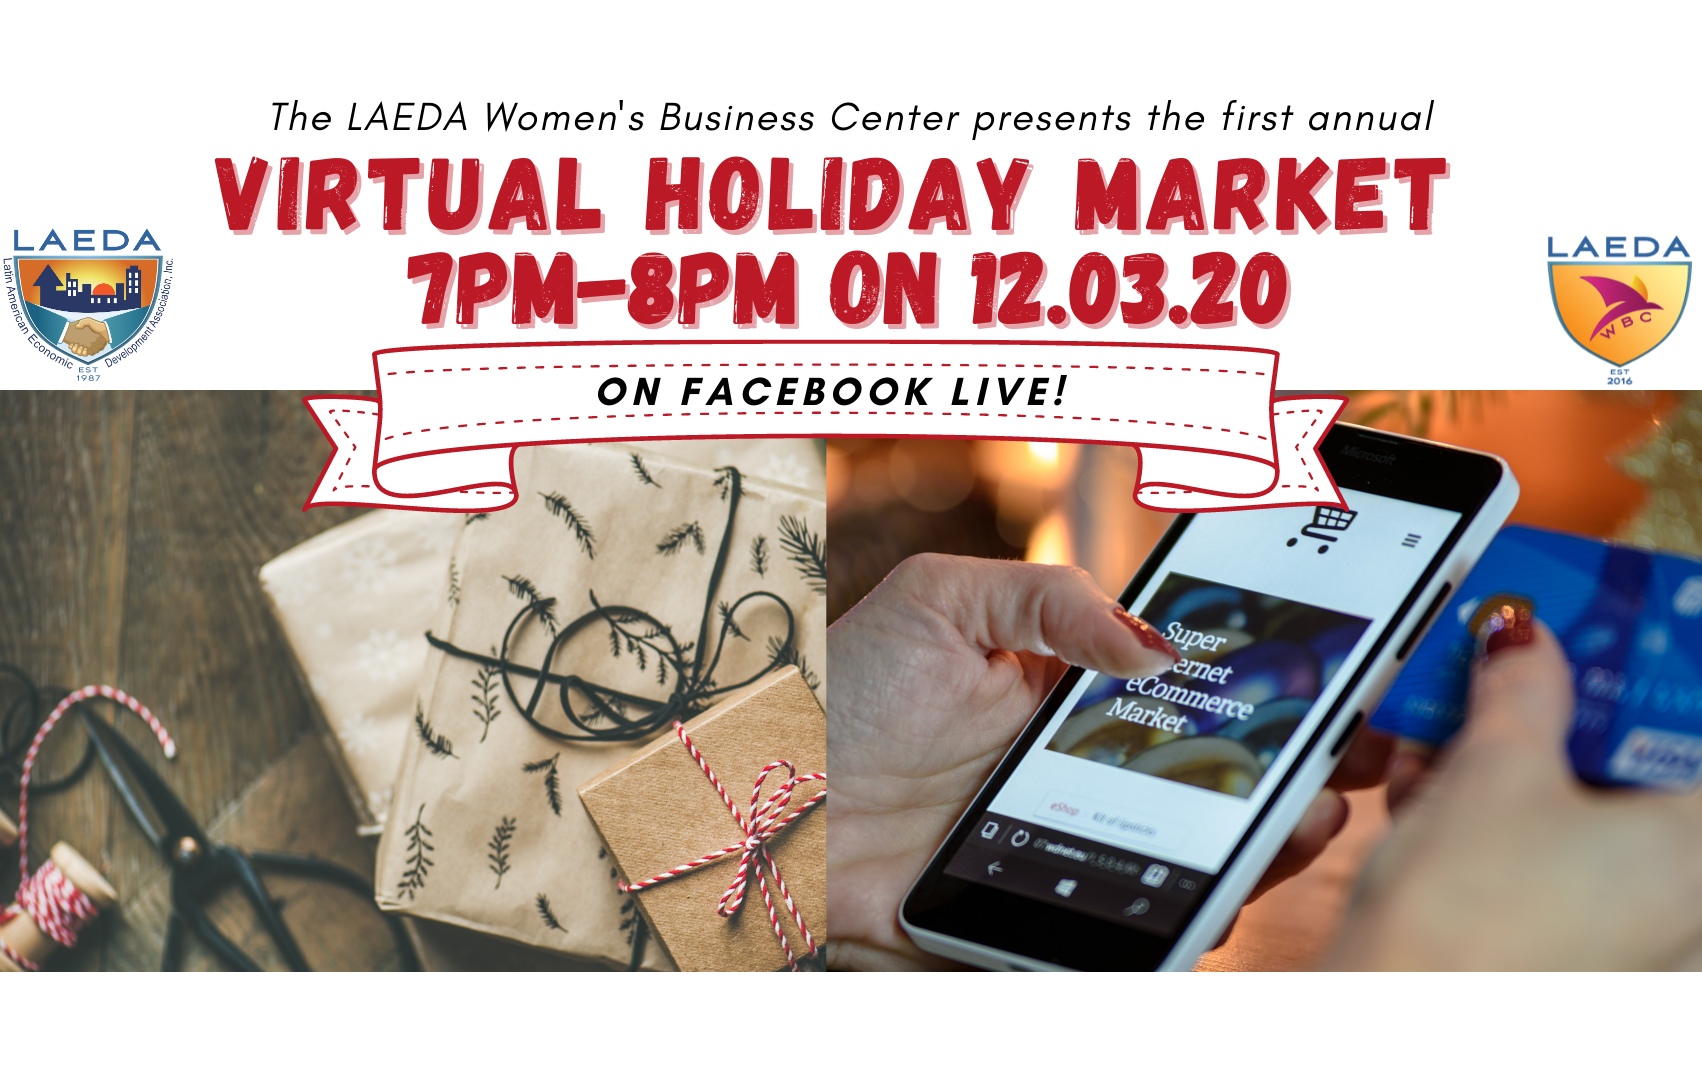 Holiday Deals Are Just a Click Away: First Annual Alumni Business Expo and Virtual Holiday Market